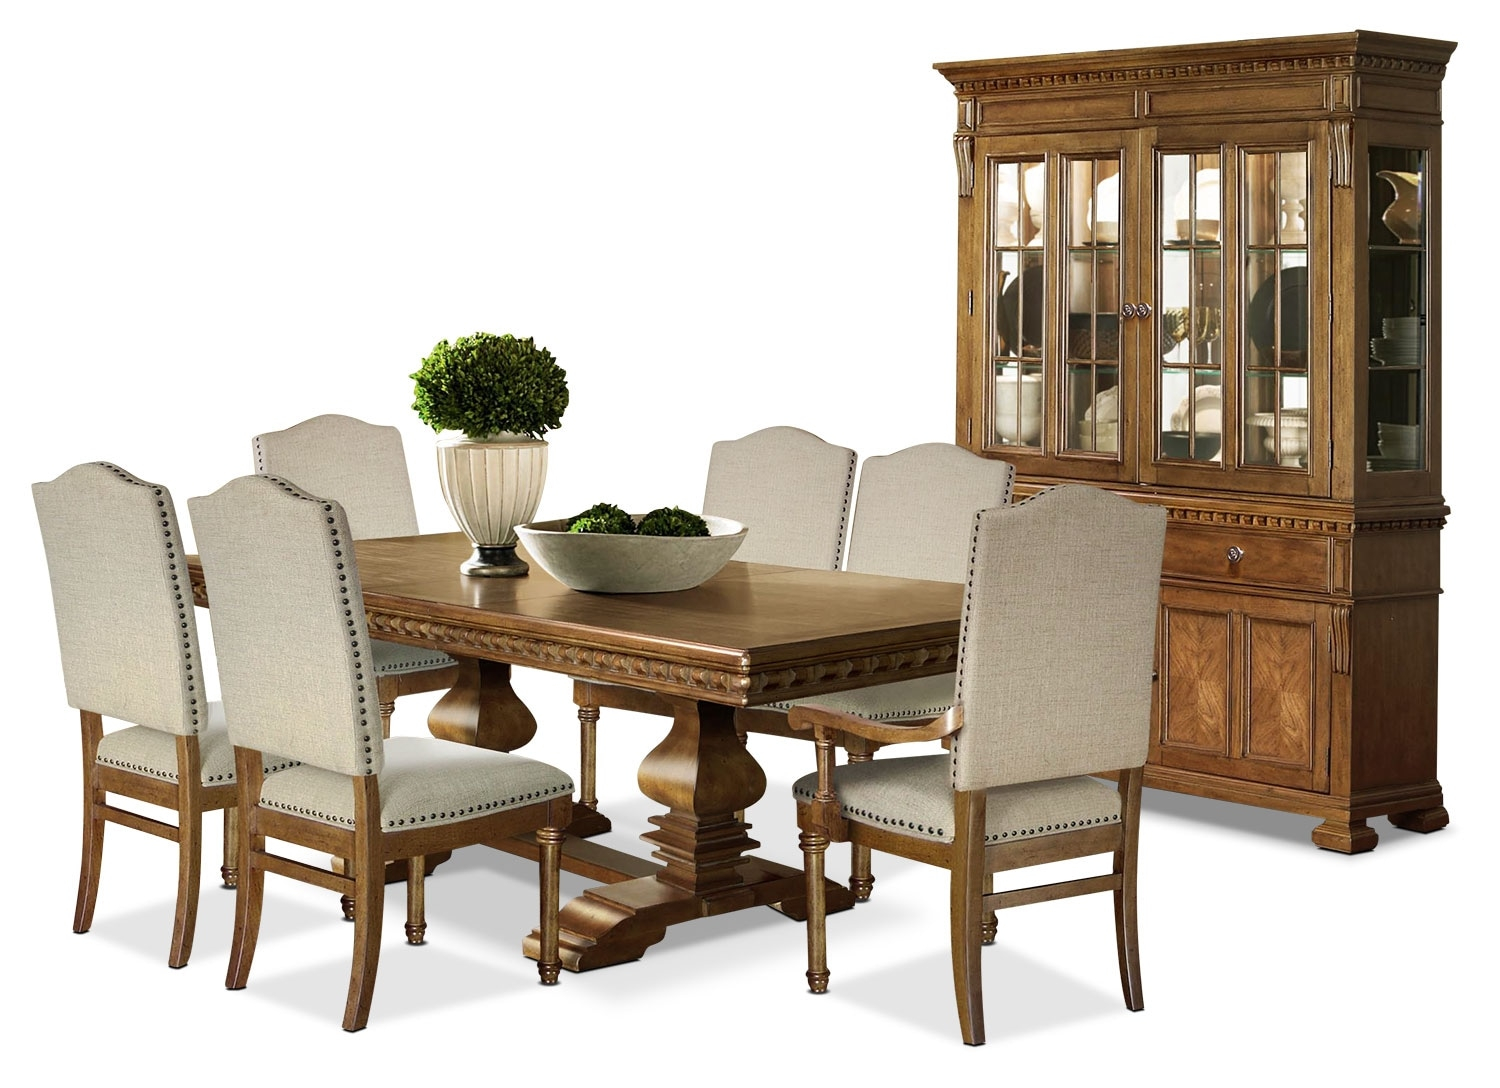 Clairmont 9-Piece Dining Package